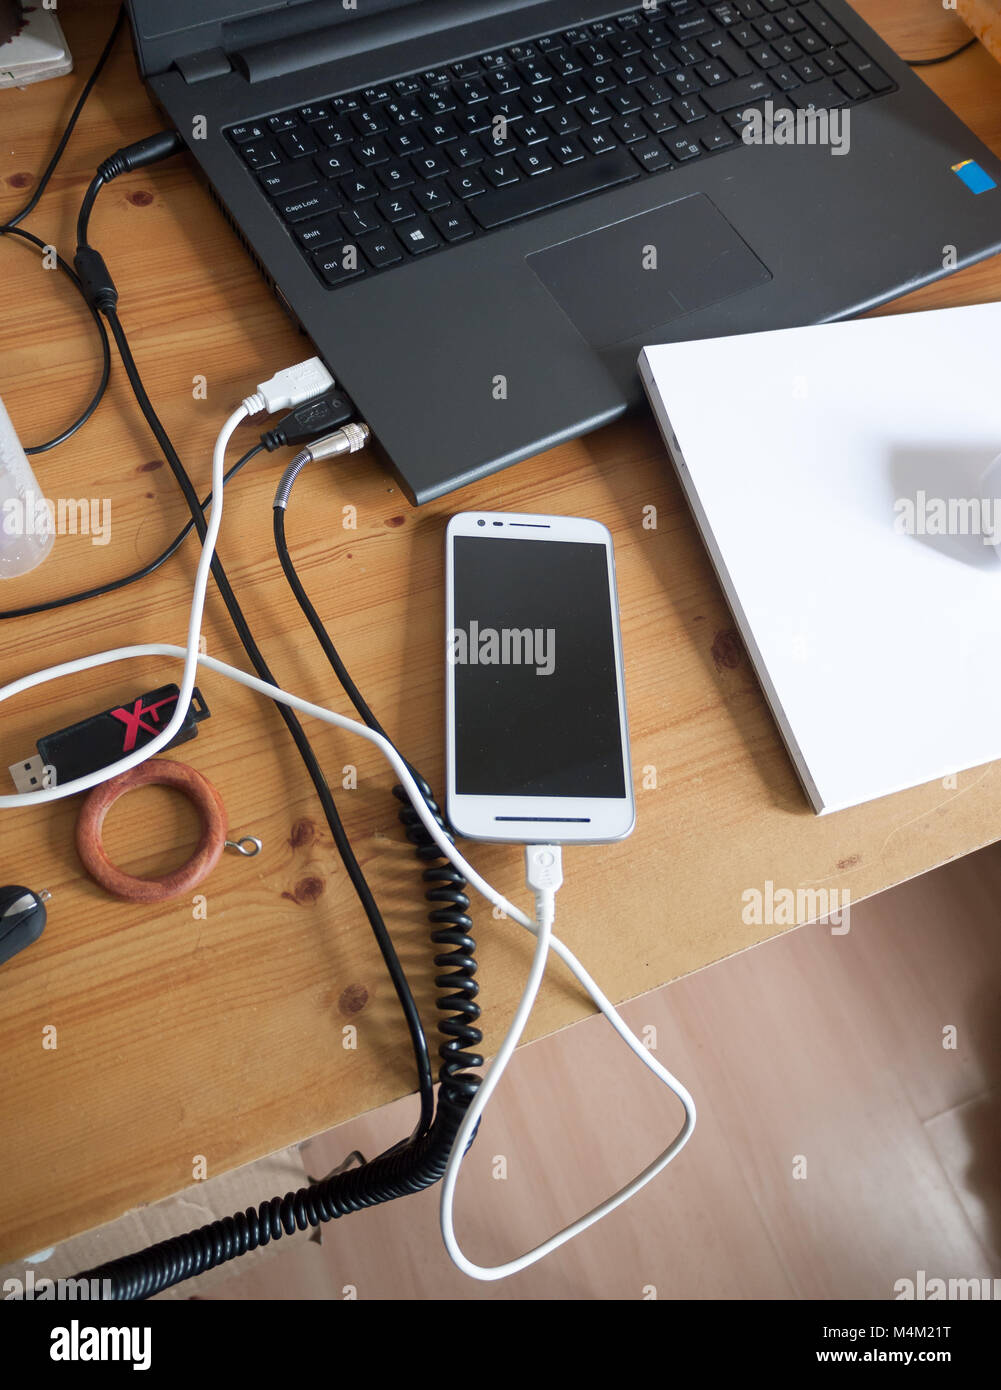 a messy student desk with laptop, phone and paper - Stock Image